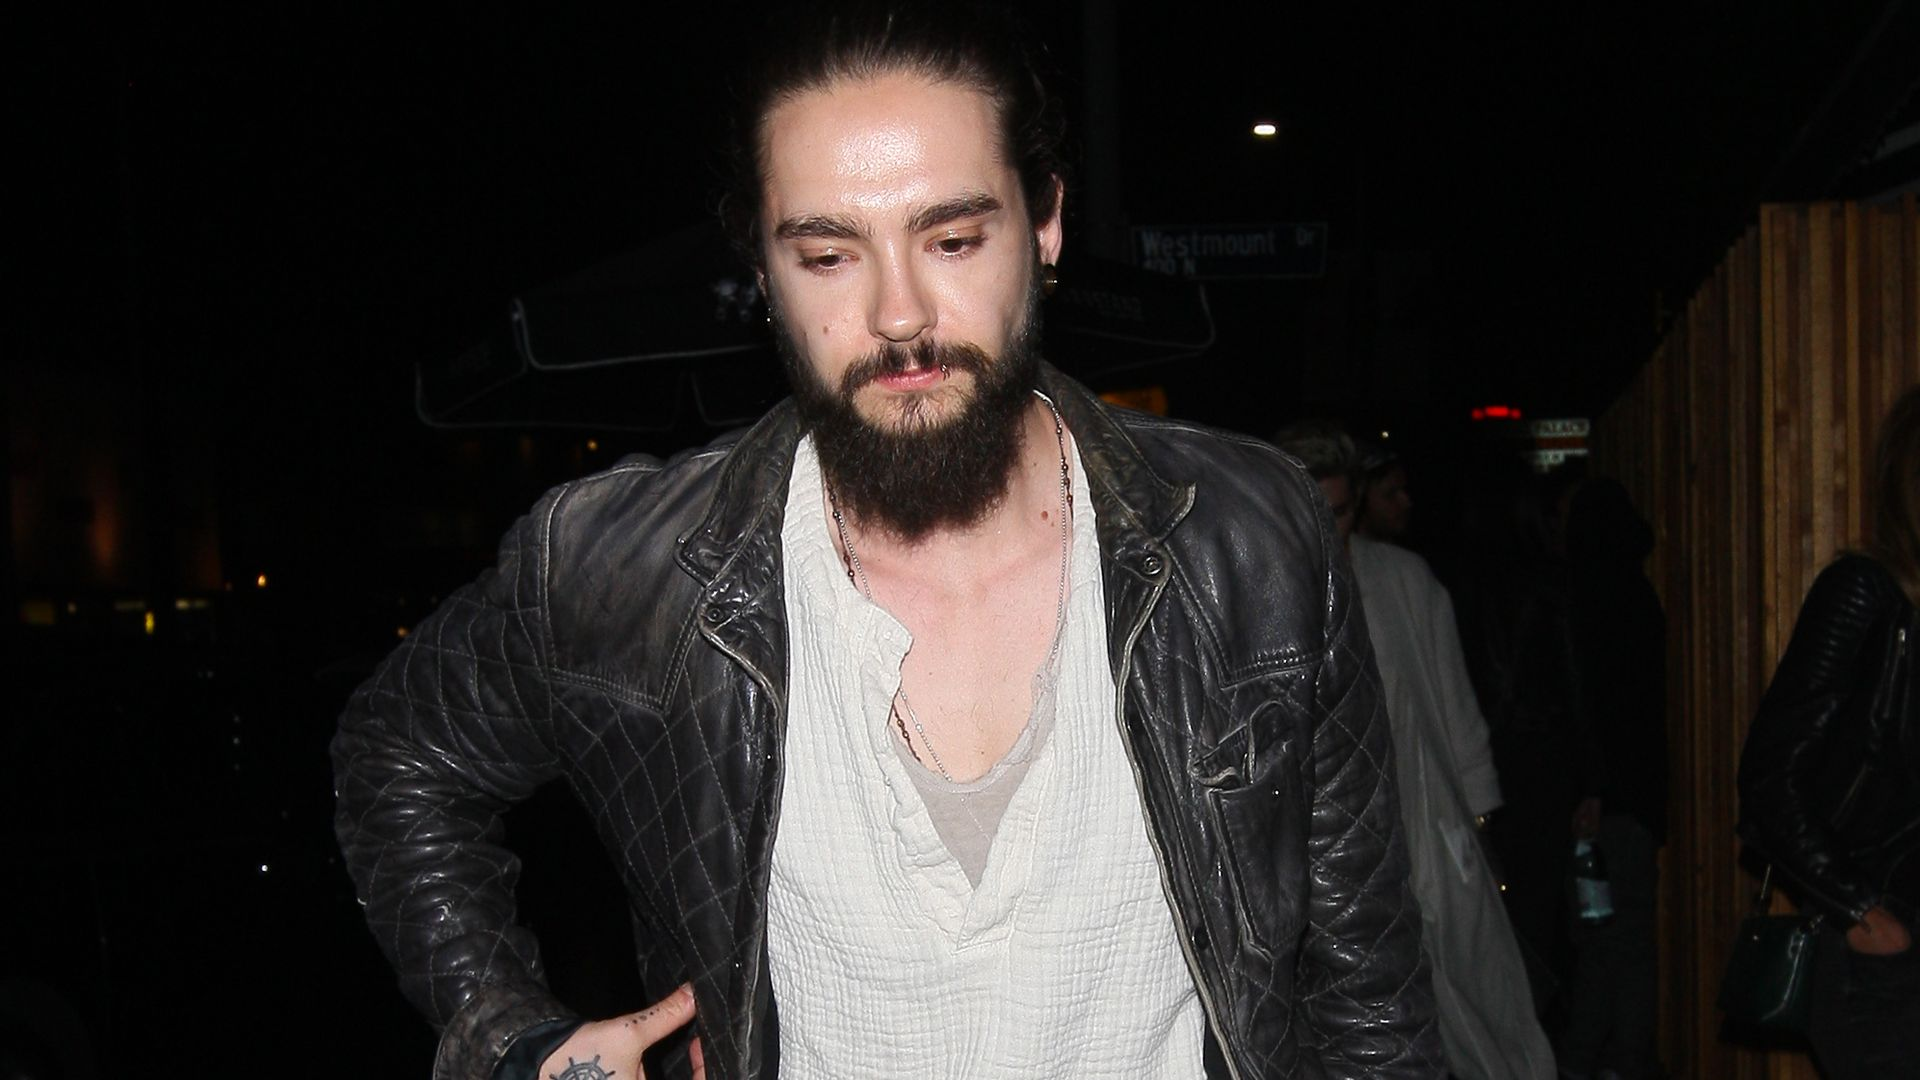 Picture of tom kaulitz - Bill Tom Kaulitz Beweisen Style Auf Der Fashion Week Promiflash De